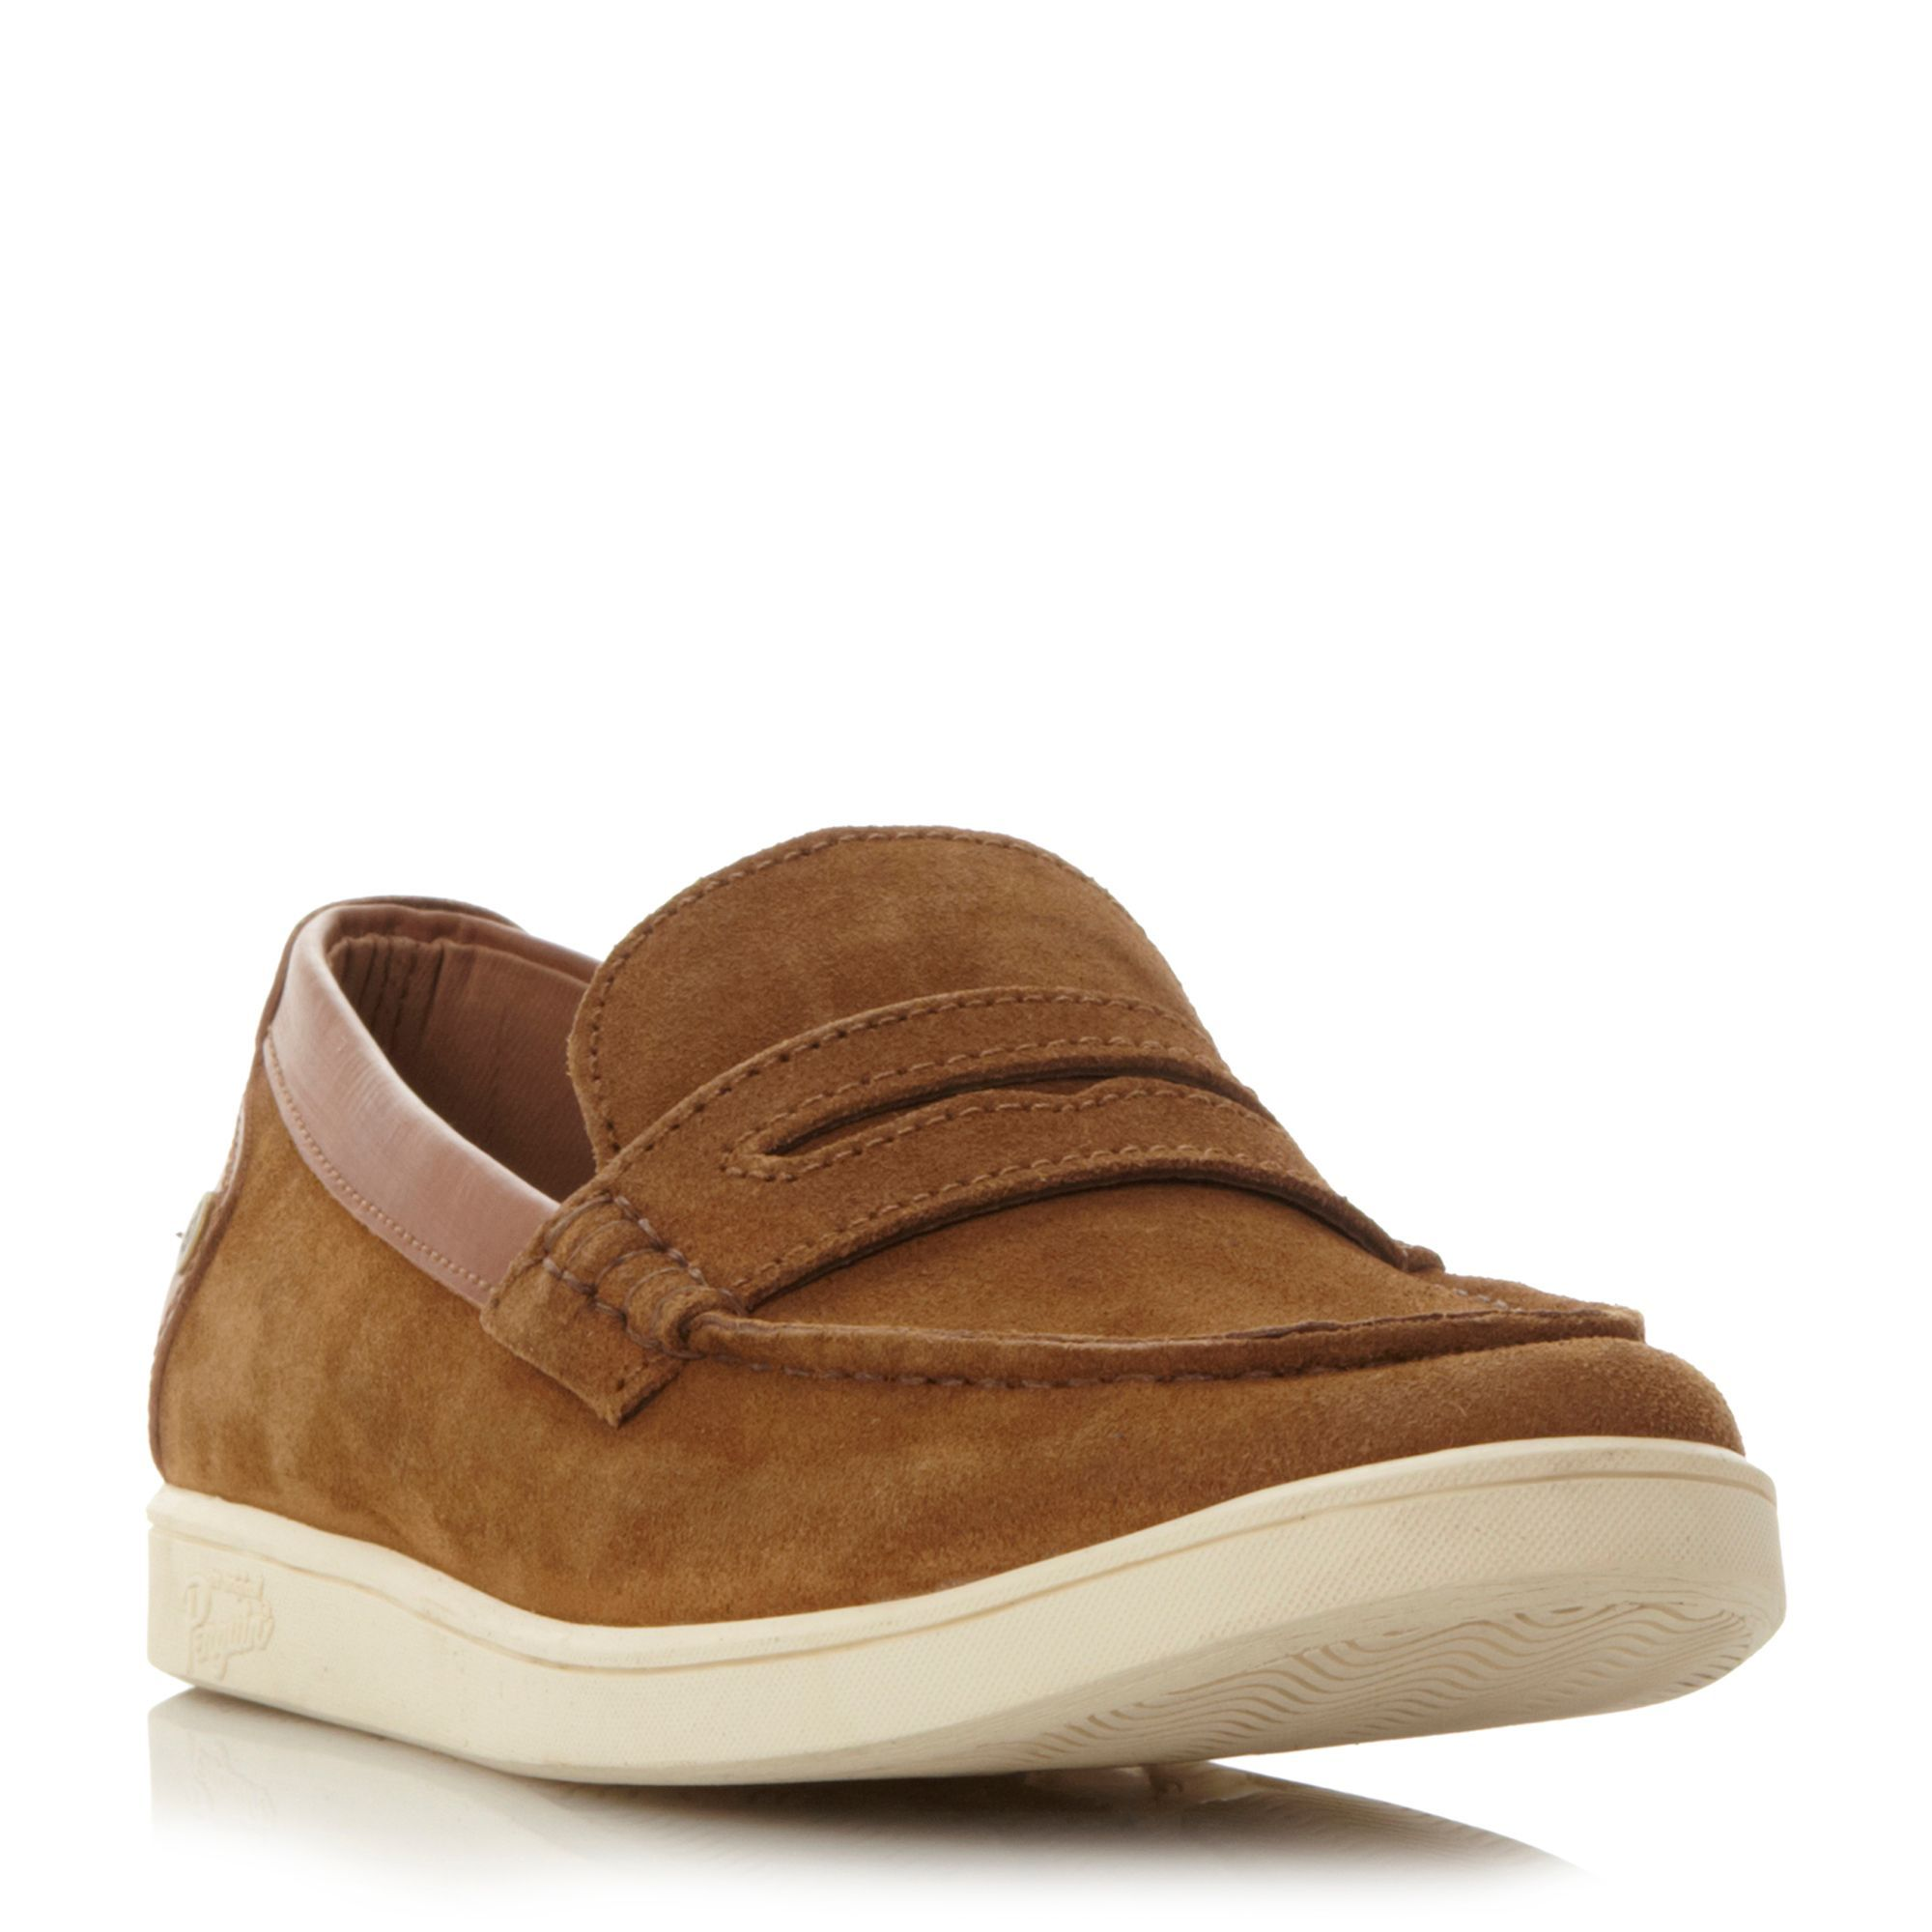 Original Penguin Laugh cupsole penny loafer, Tan